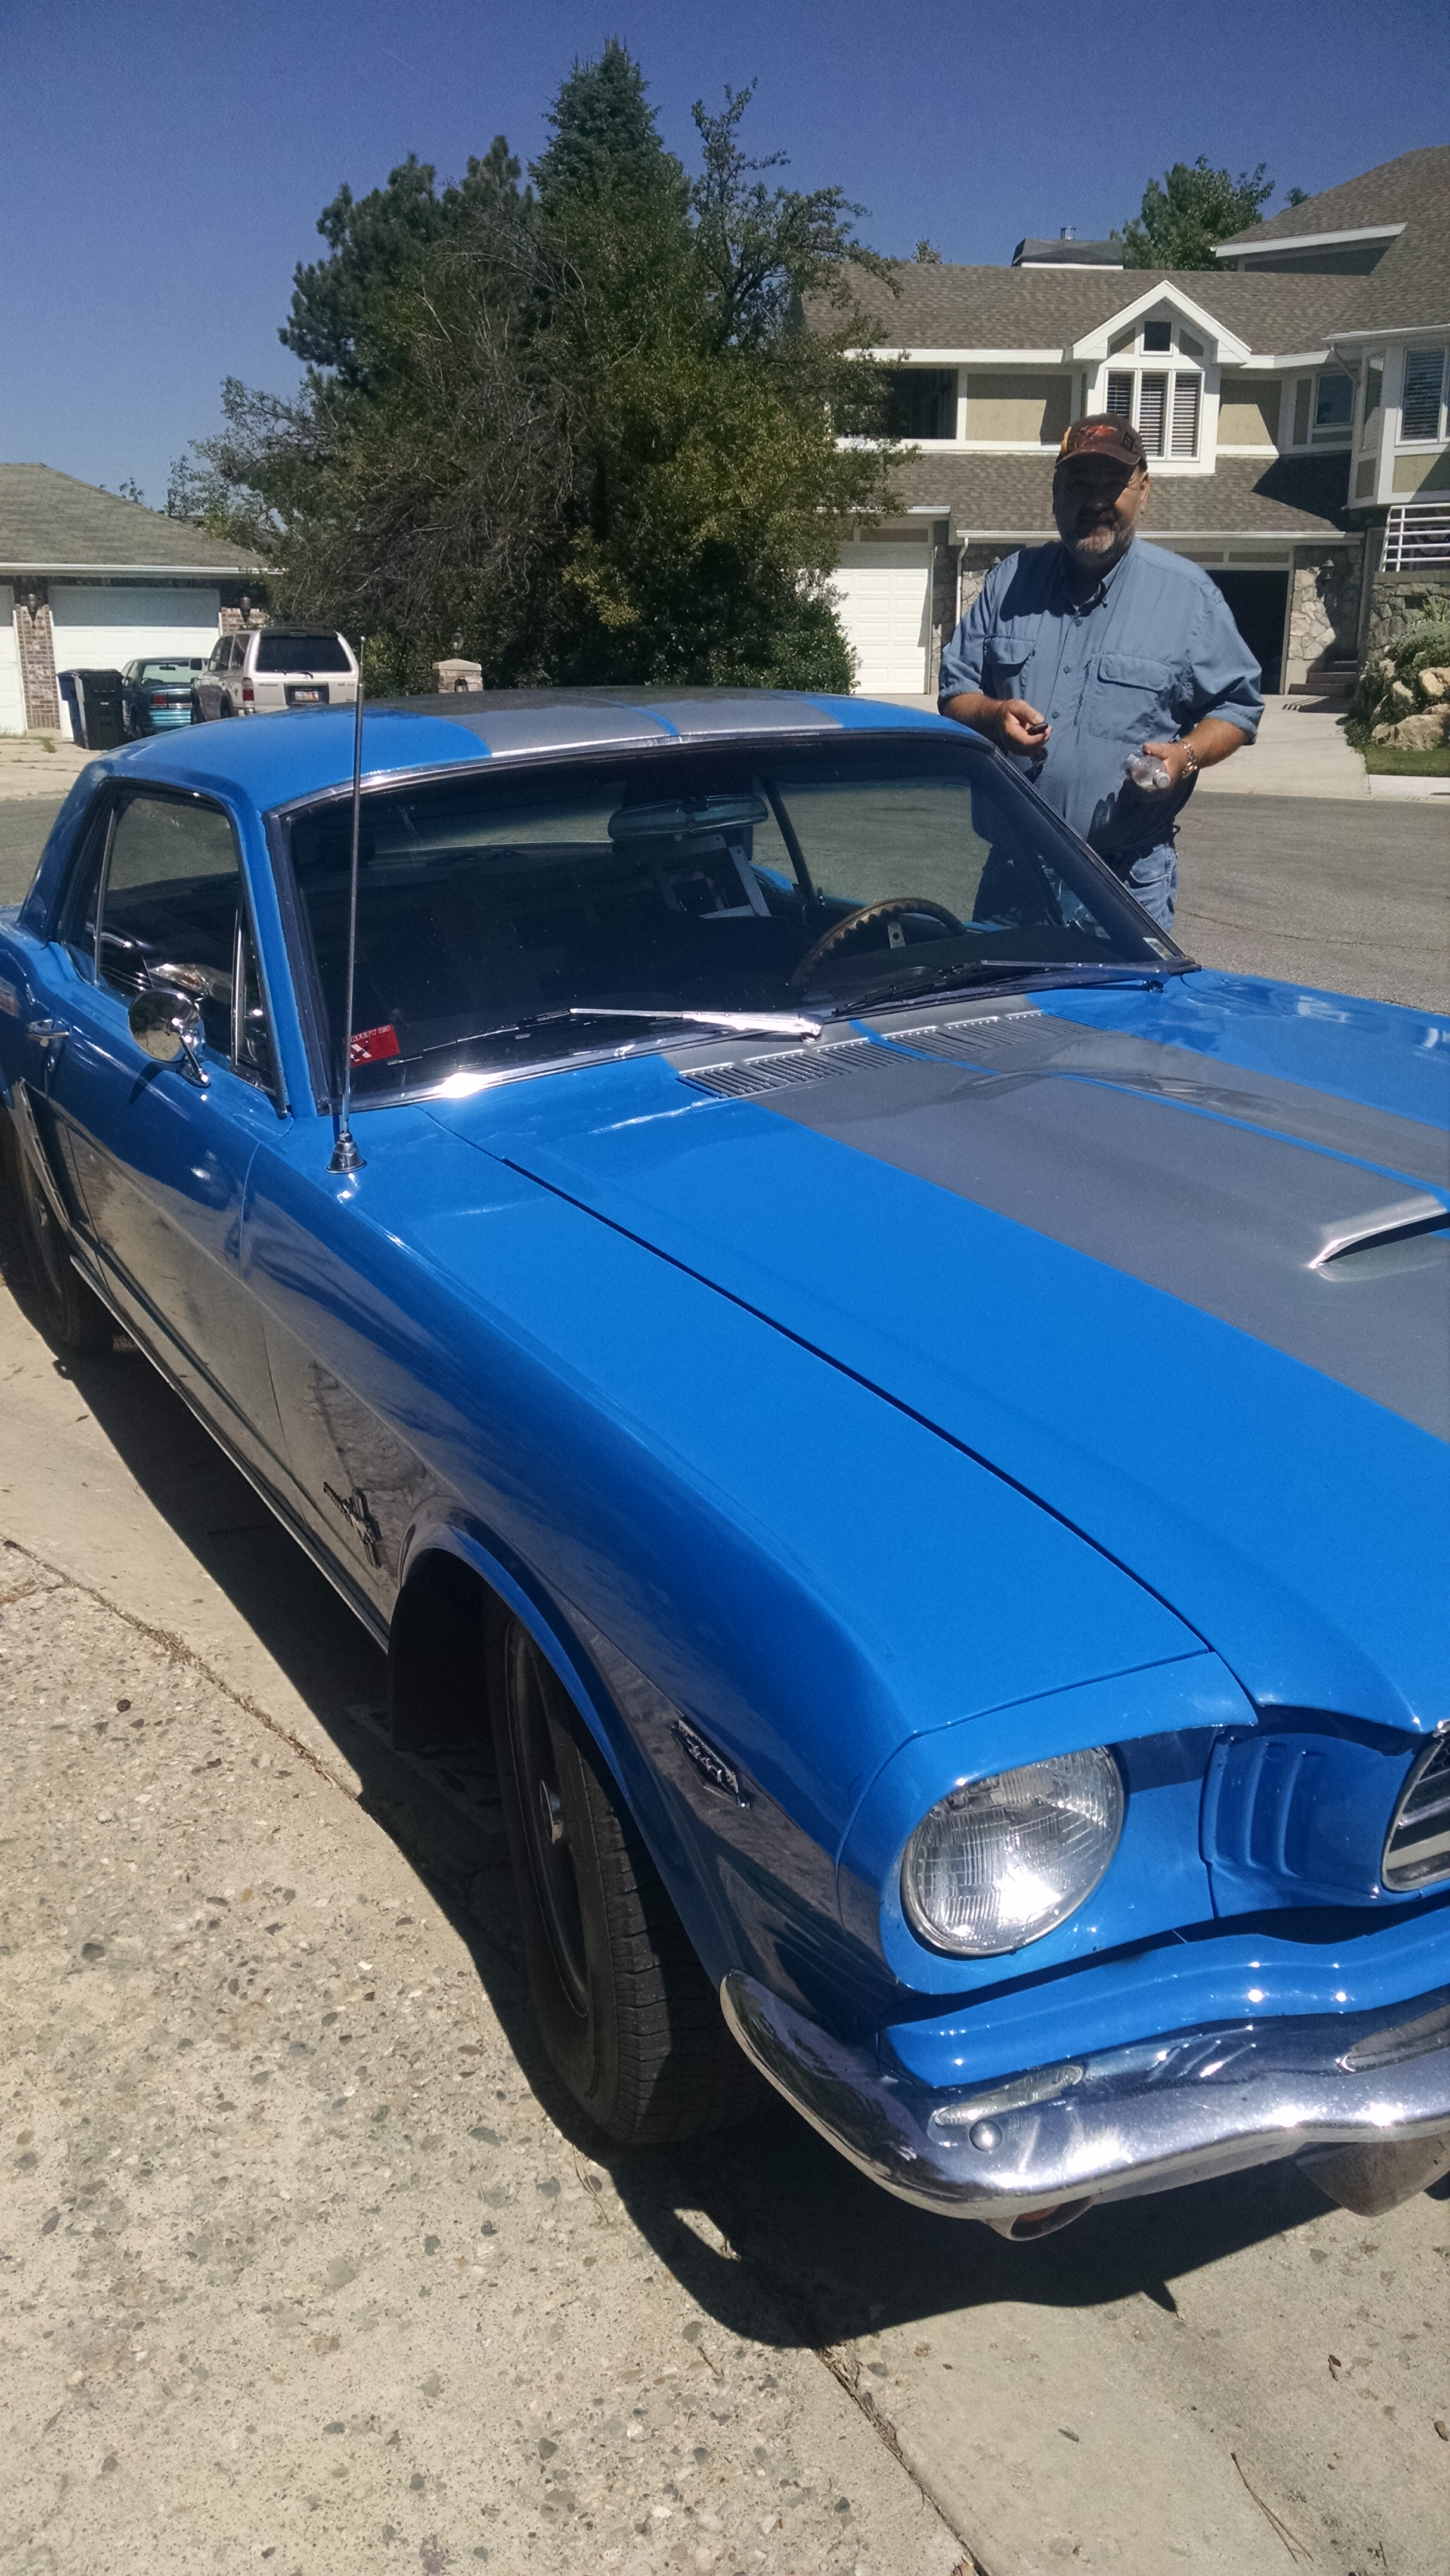 My Uncle John with his '65 Mustang